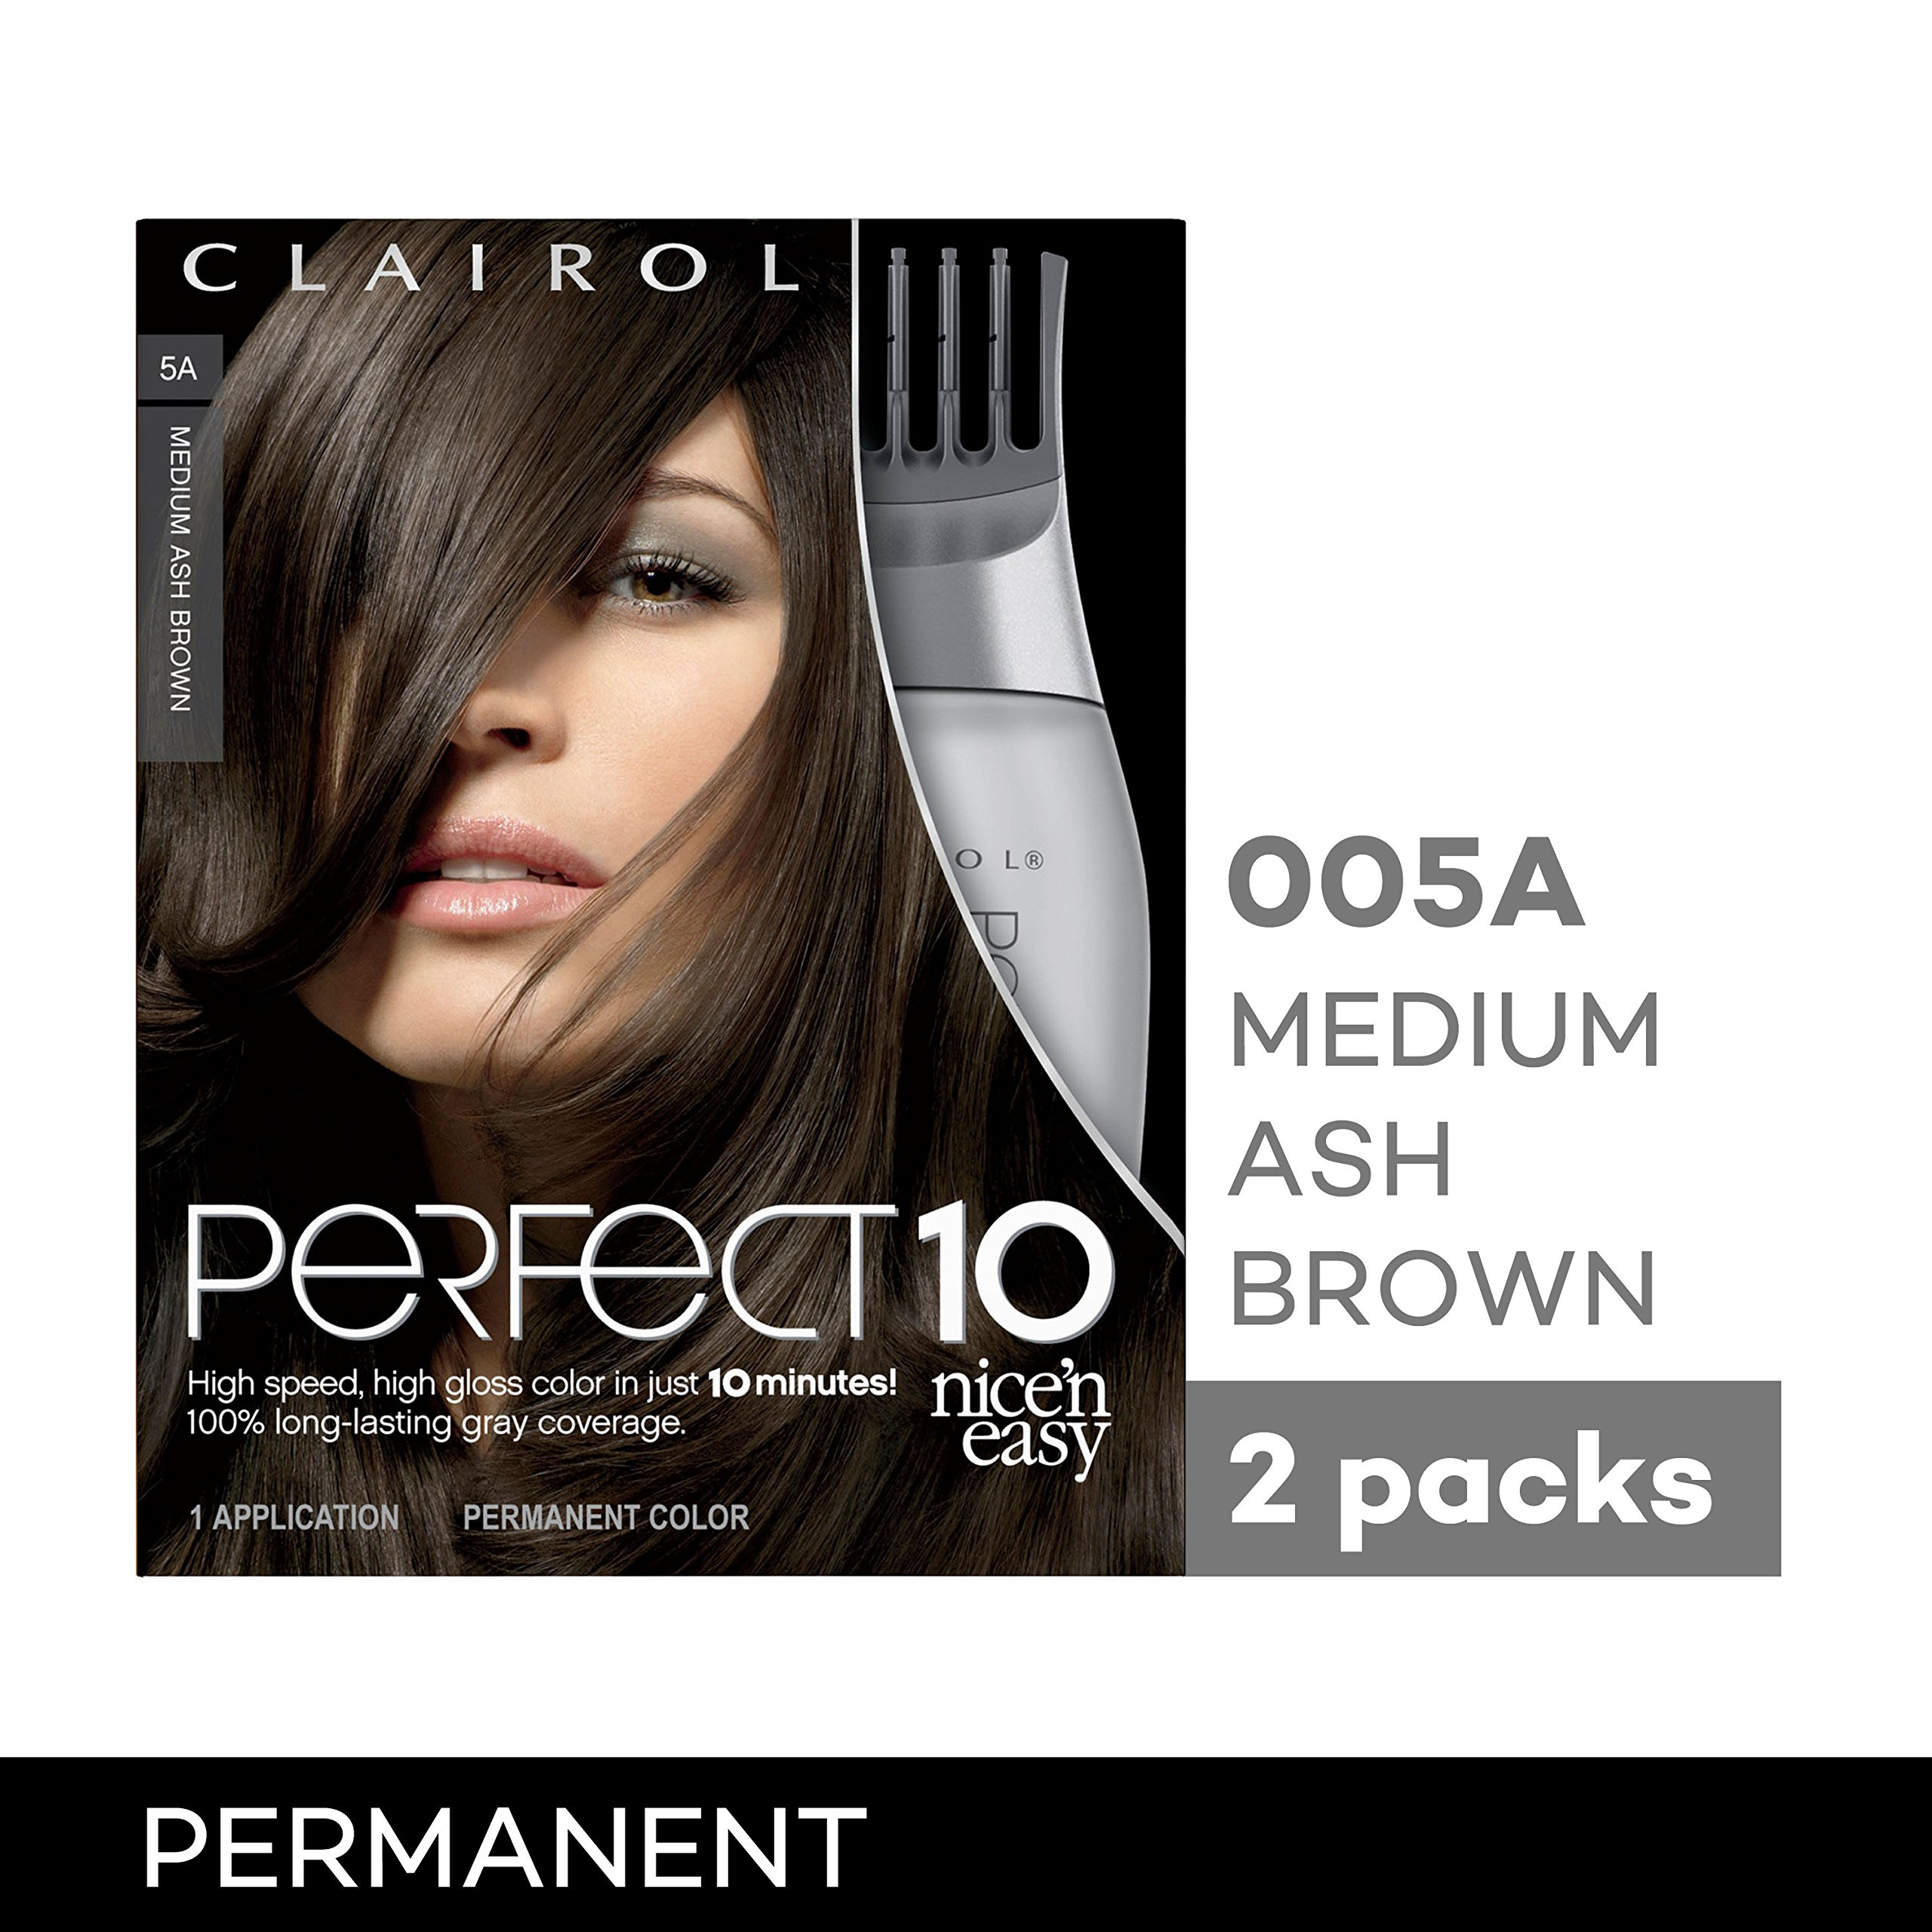 Clairol Perfect 10 By Nice 'N Easy Hair Color Kit (Pack of 2), 005A Medium Ash Brown, Includes Comb Applicator, Lasts Up To 60 Days by Clairol (Image #10)